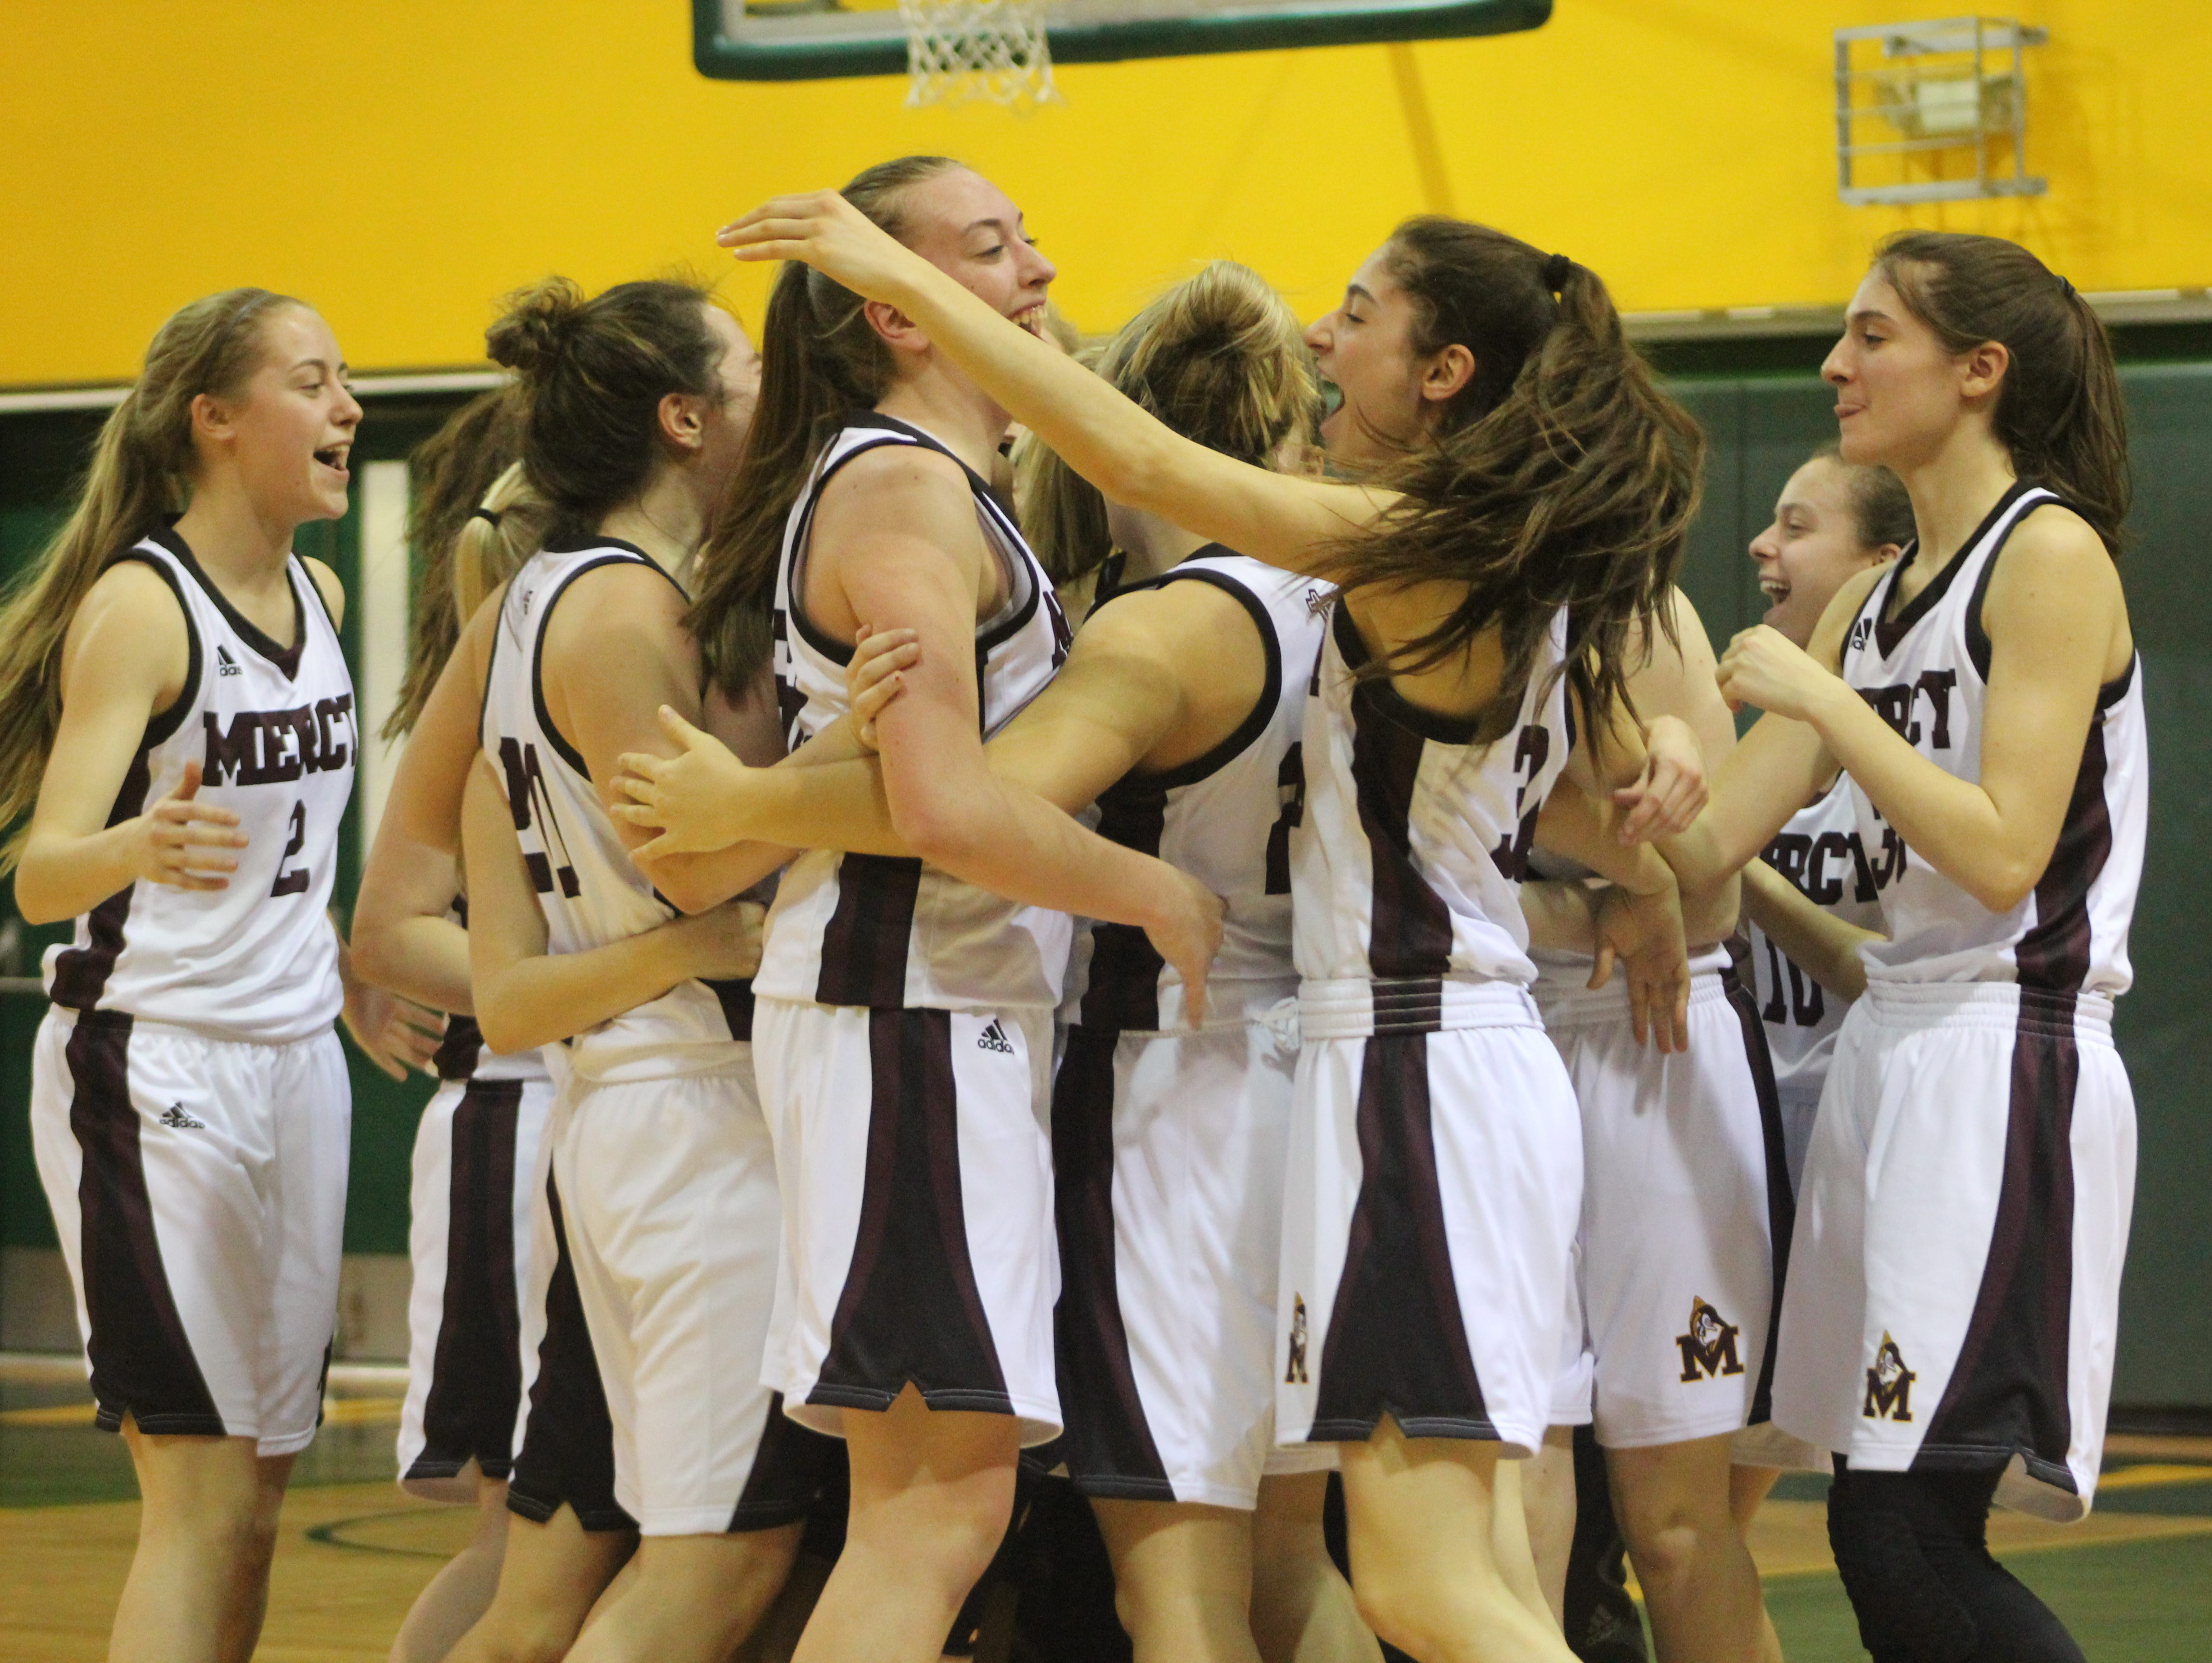 Farmington Hills Mercy players embrace after beating Birmingham Marian, 45-36, to win the Catholic League A/B Division girls basketball title Feb. 19 at Wayne State.